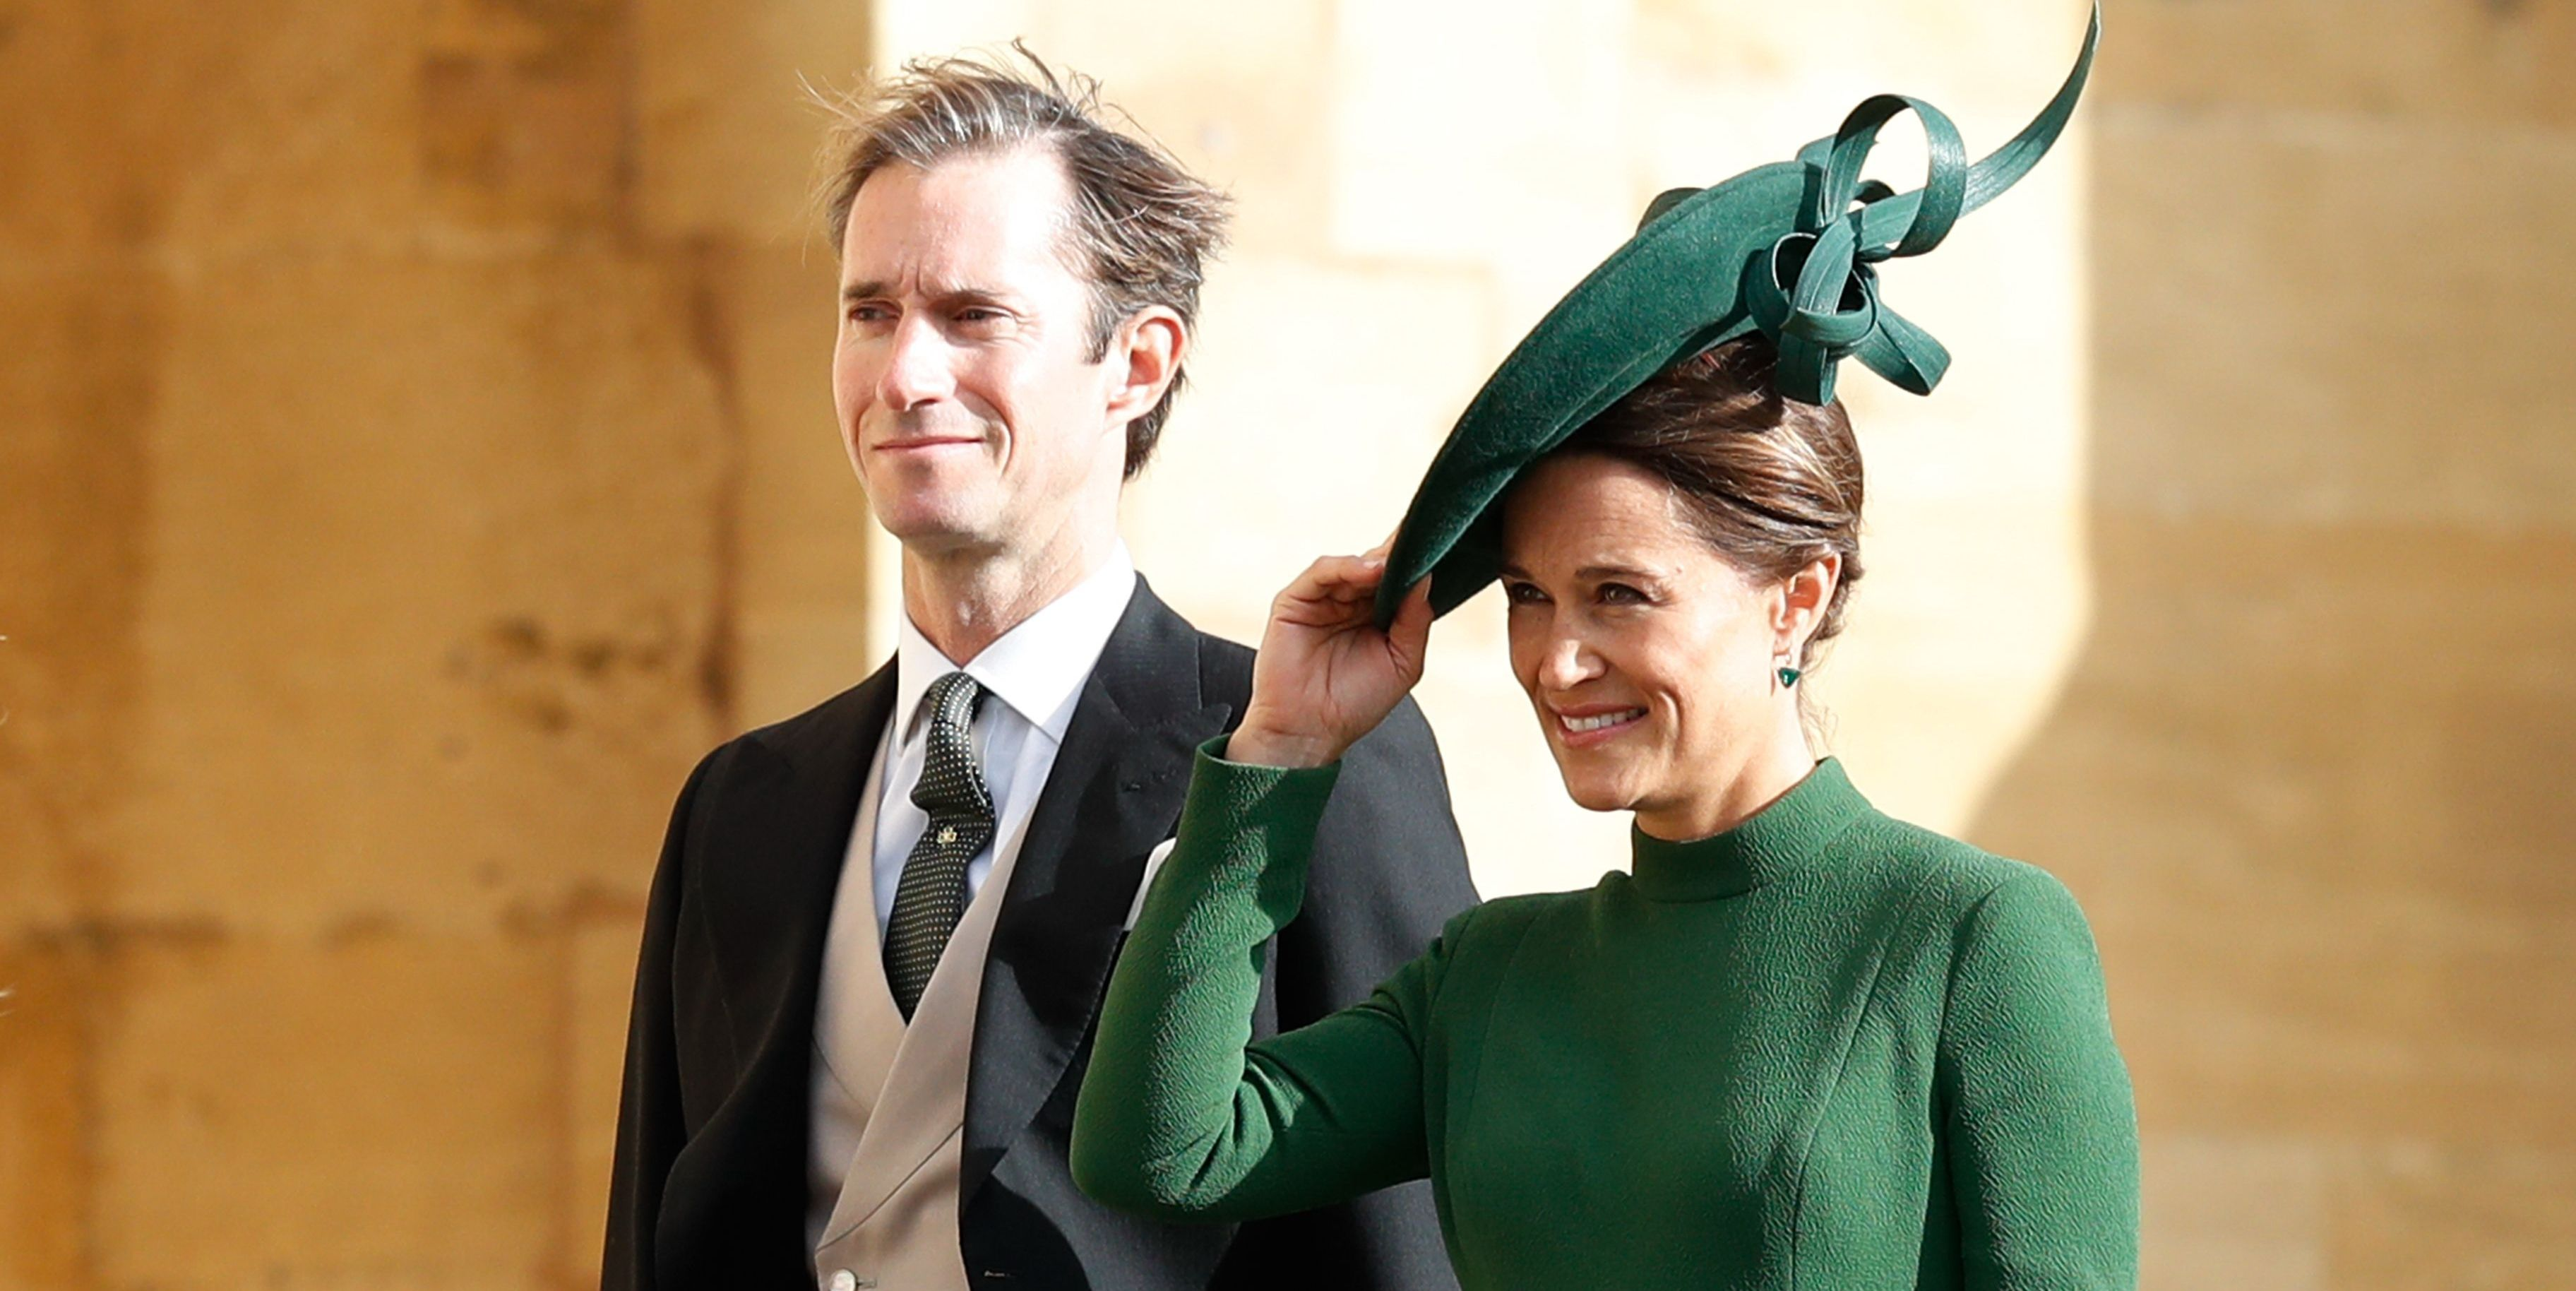 Pippa Middleton Looks Gorgeous In Her Maternity Royal Wedding Guest